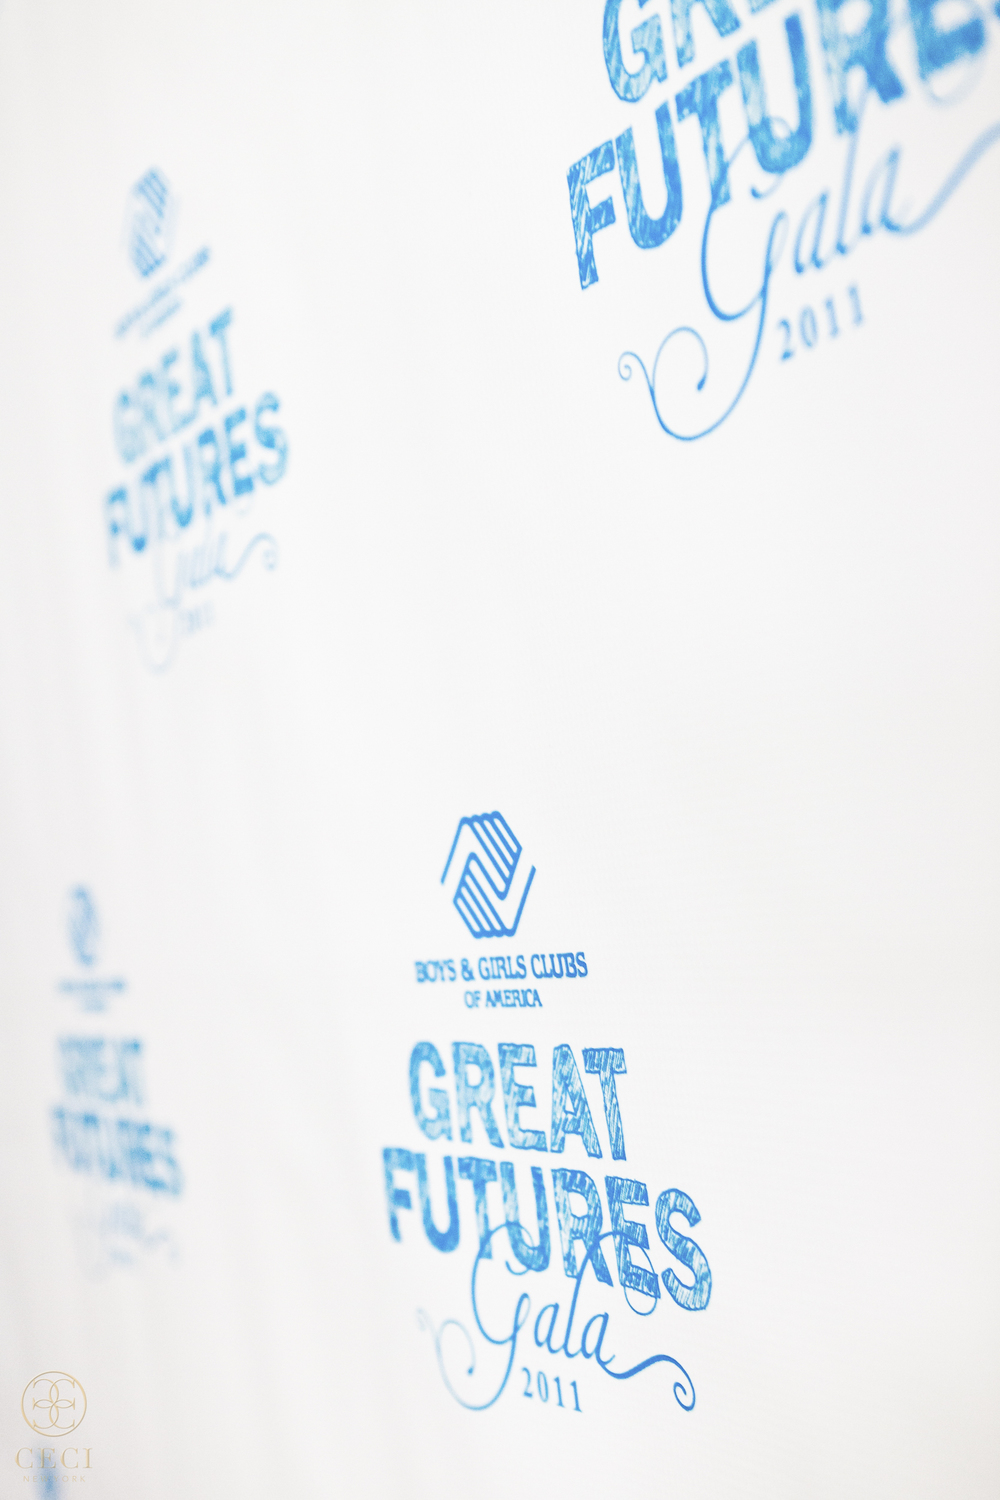 ceci-new-york-gives-back-boys-and-girls-club-of-america-great-futures-gala-2011-invitations-design-paper-accessories-signage-19.jpg